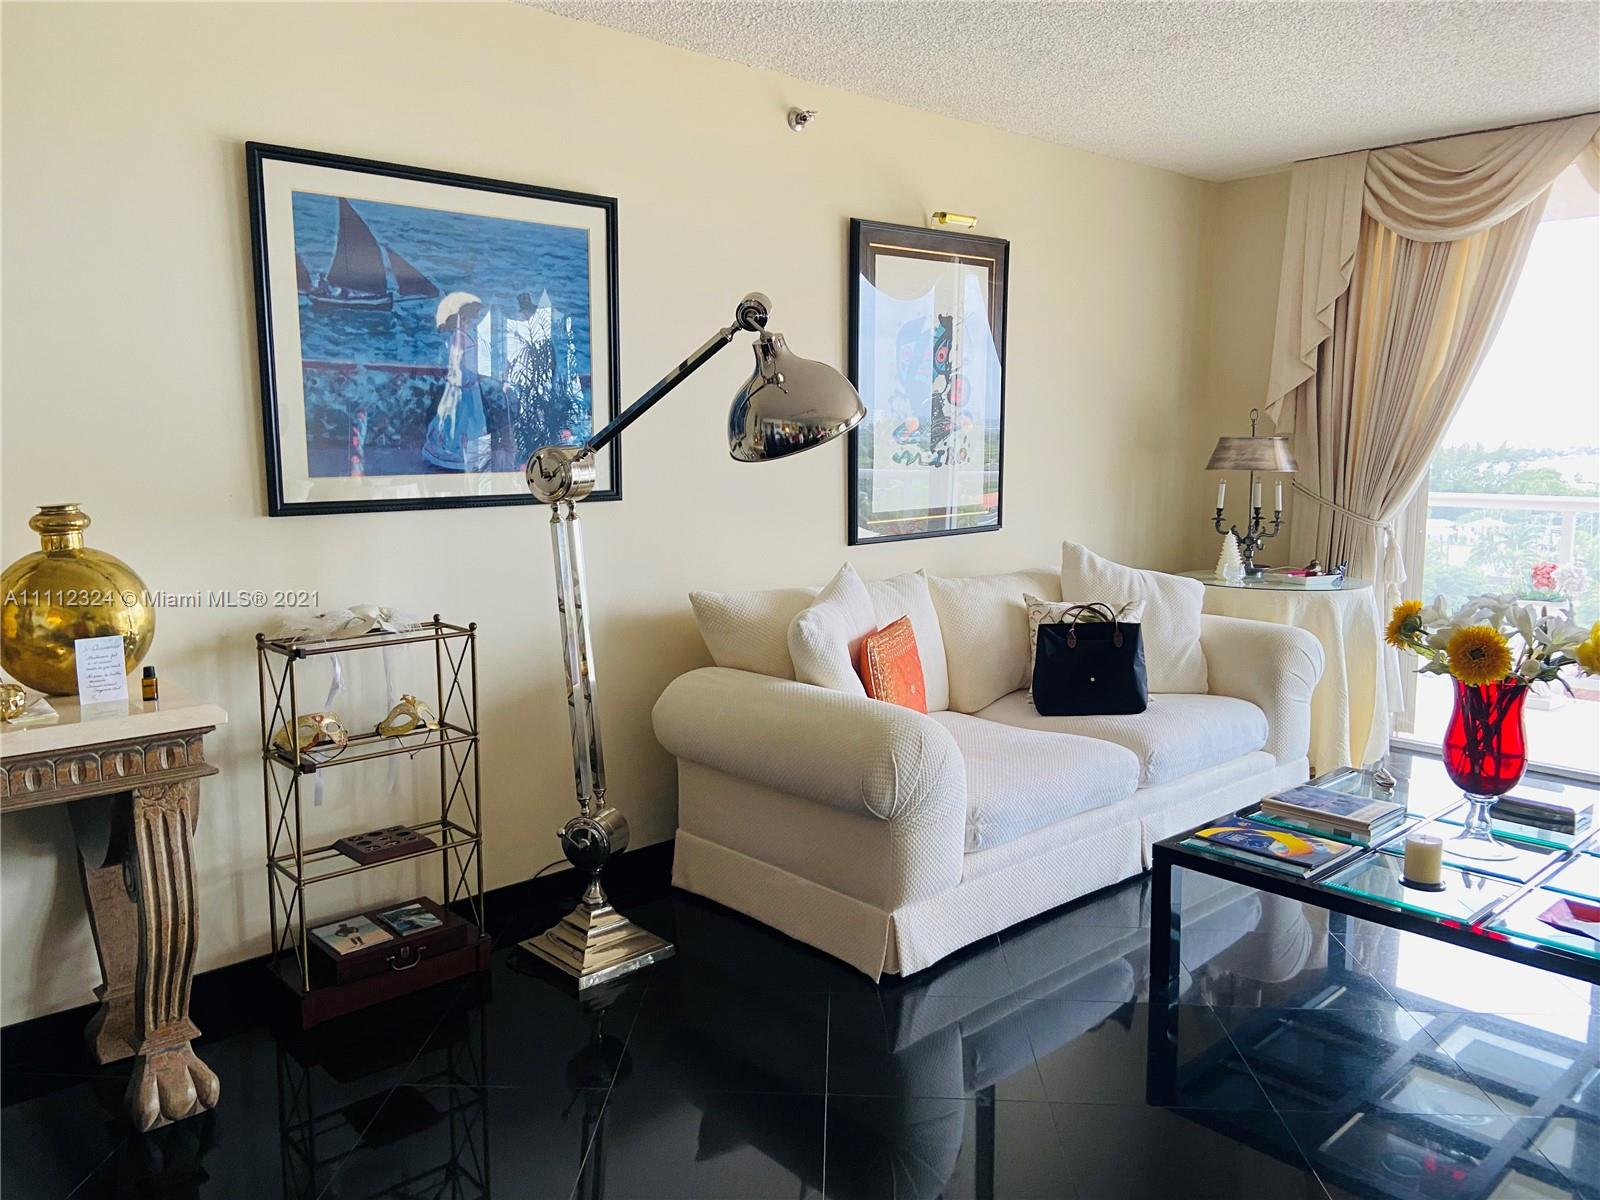 CHAMPLAIN TOWERS EAST CON Condo,For Rent,CHAMPLAIN TOWERS EAST CON Brickell,realty,broker,condos near me